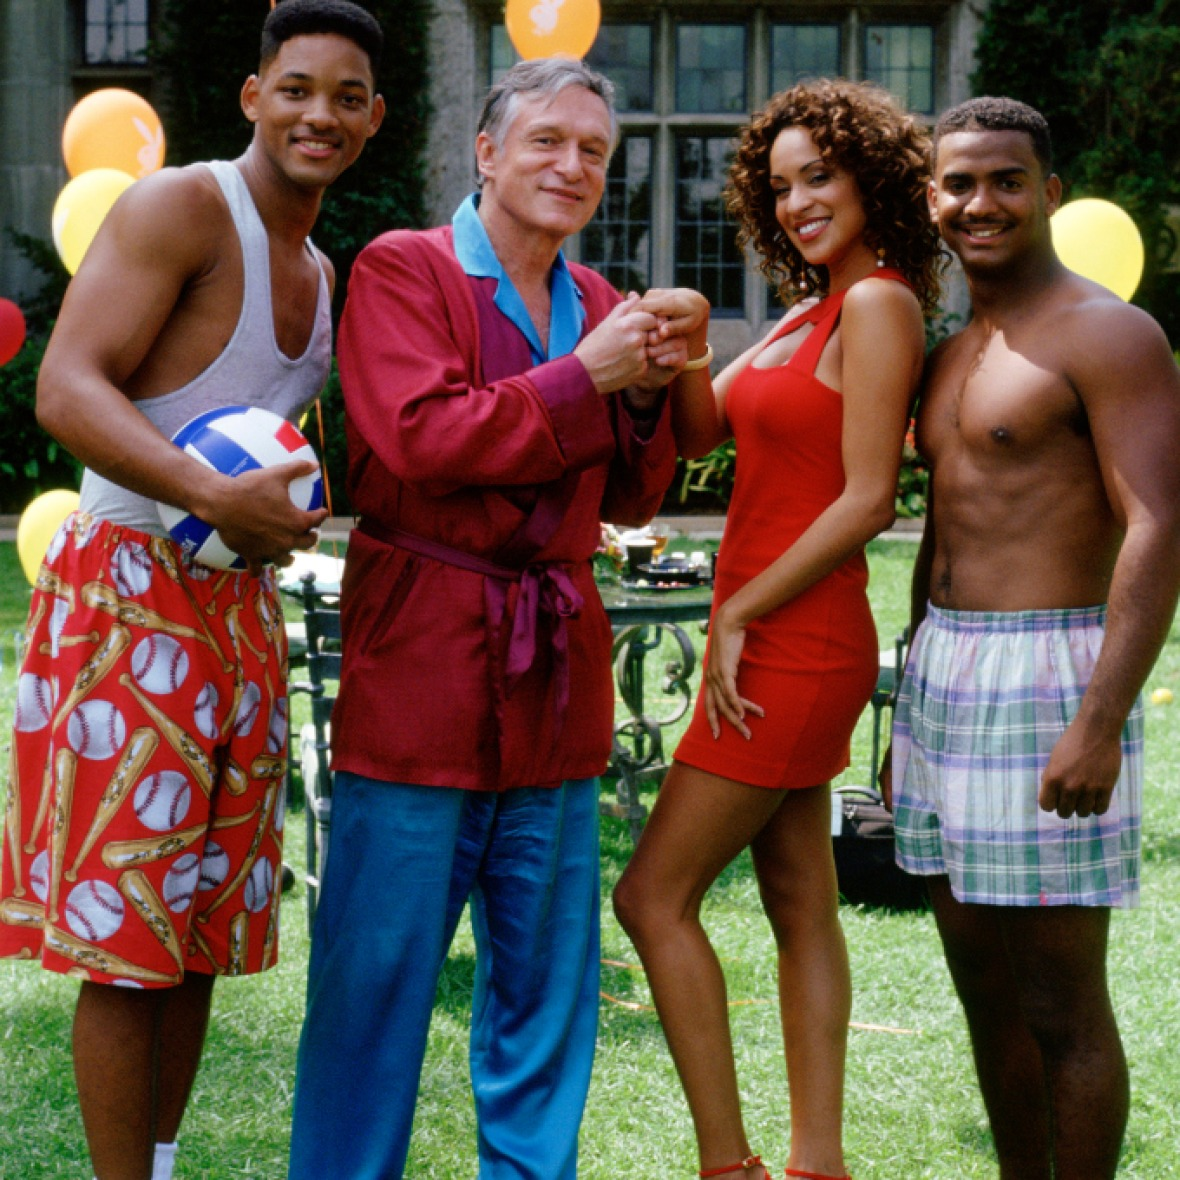 hugh hefner fresh prince of bel-air - getty